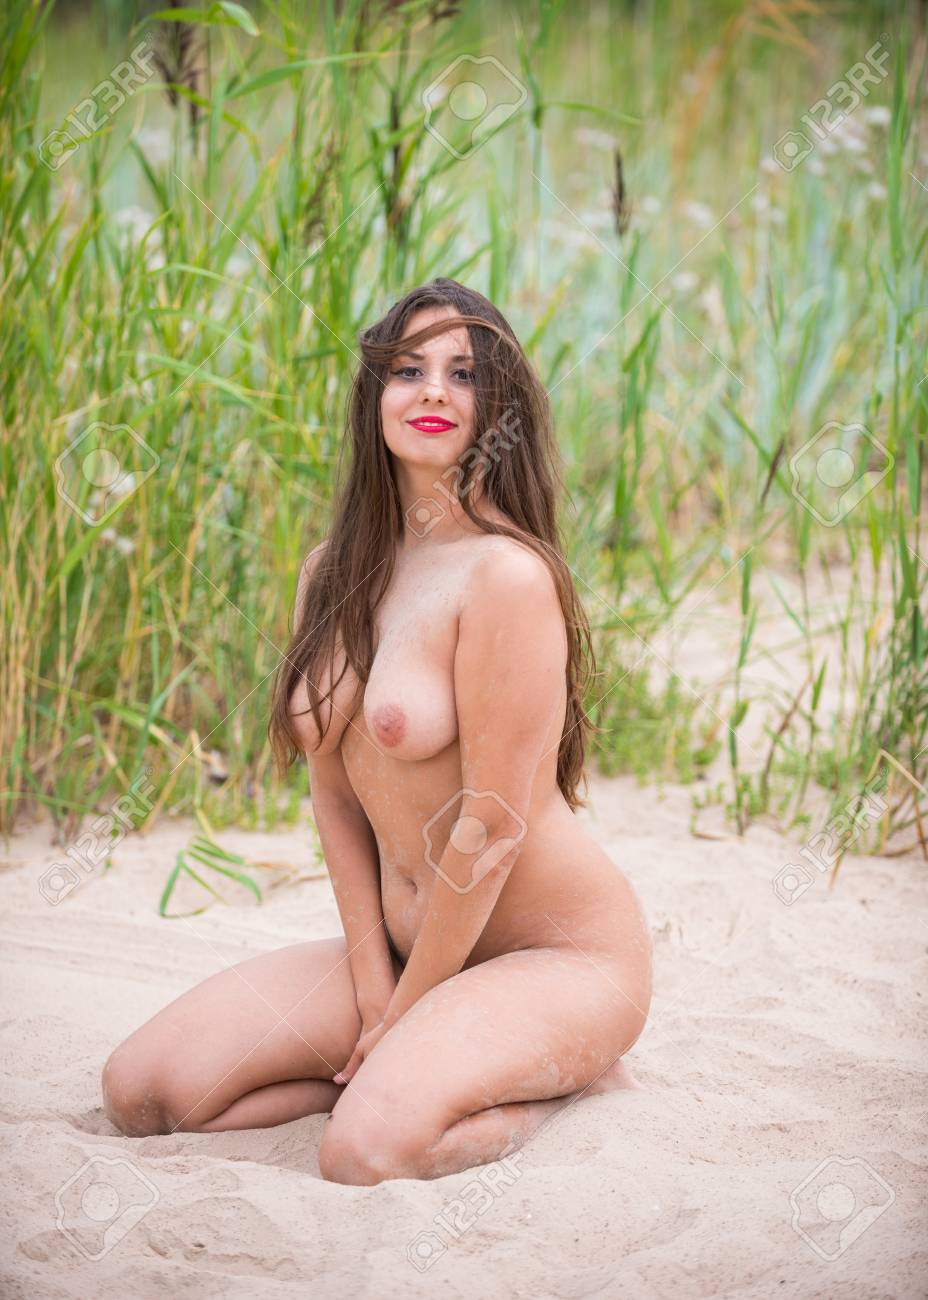 Naked women in the outdoors